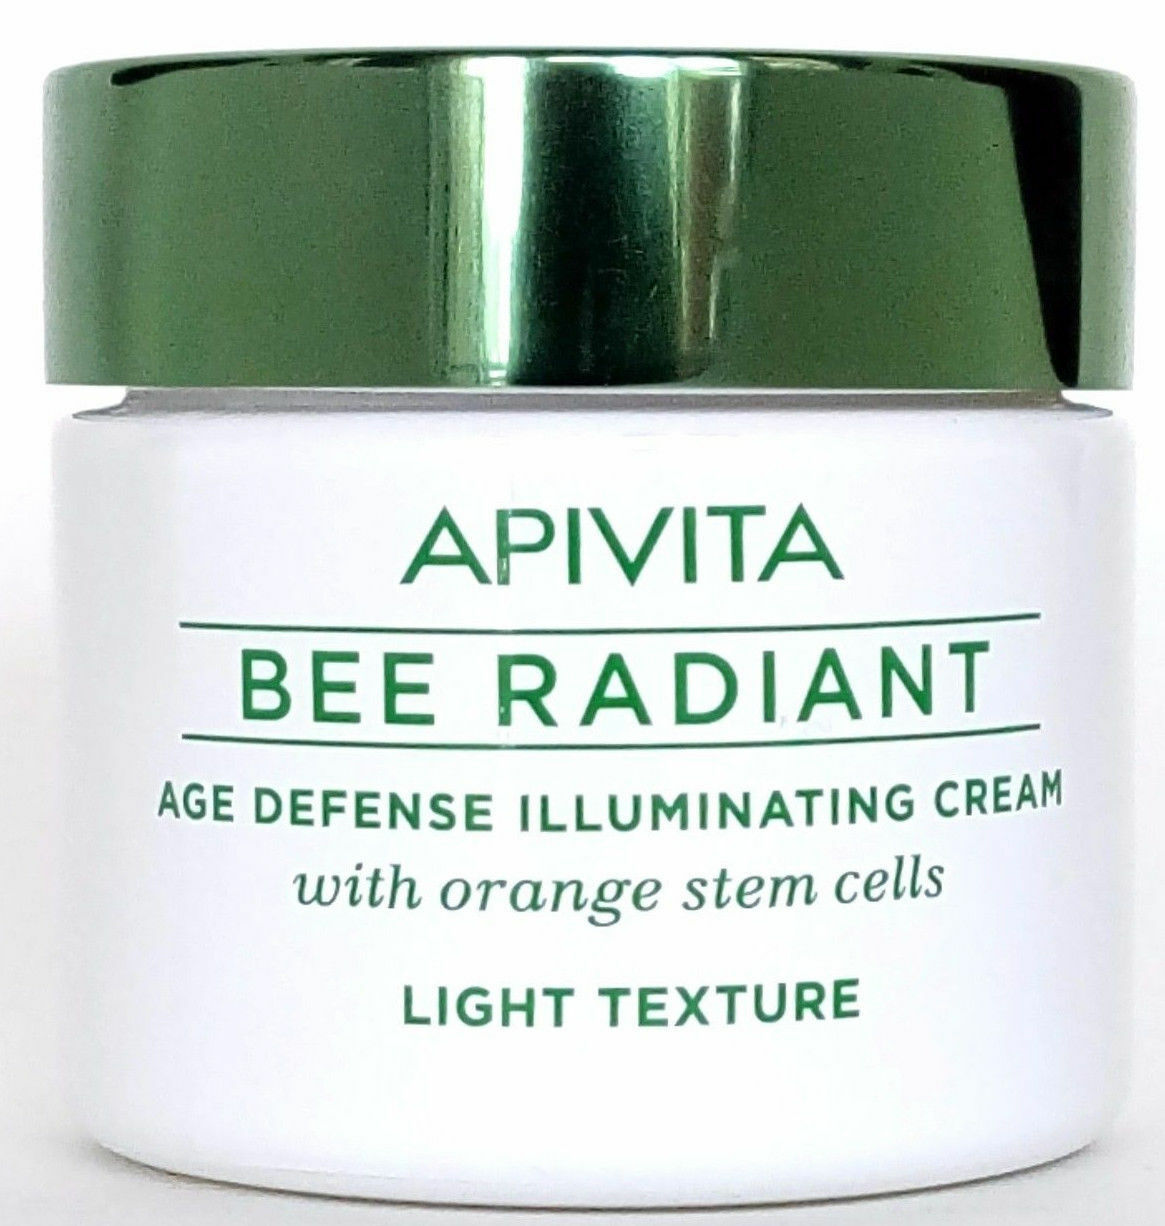 Apivita - Bee Radiant Age Defense Illuminating Cream - Rich Texture - 50ml/1.76oz OLAY Regenerist Advanced Anti-Aging Eye Roller Daily Treatment 1 Each (Pack of 2)